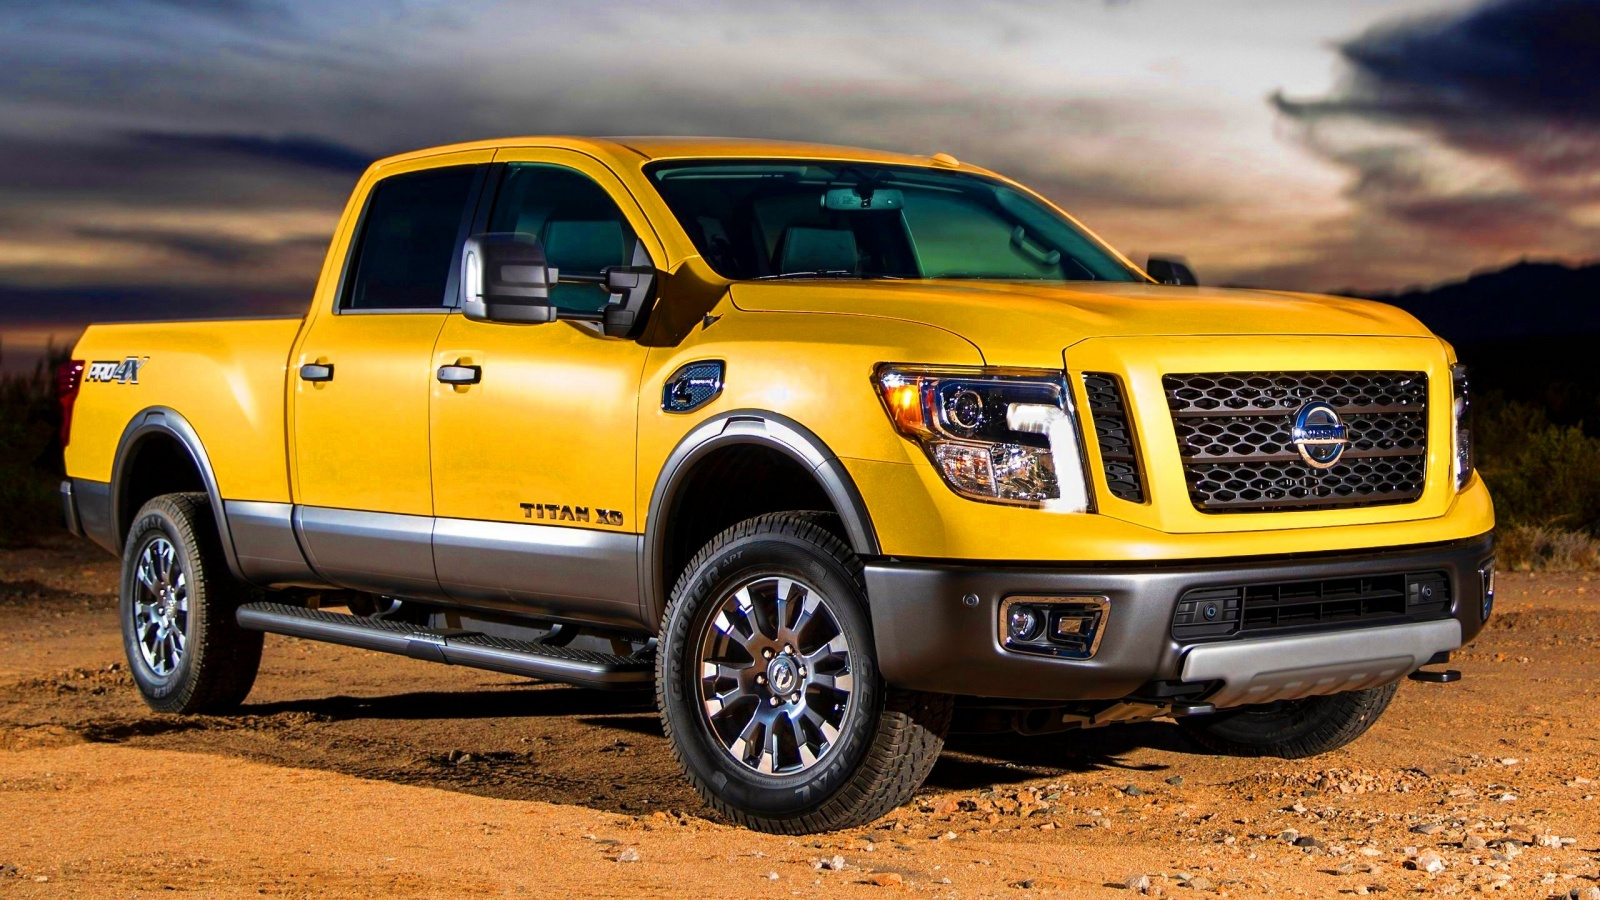 fast off road rc cars with View Nissan Titan Xd 2016 1600x900 on 28030 Mtl Dune likewise Default together with Tra76044 1 in addition 295267319291501260 also 716444 Benefactor Dubsta 6x6 Appreciation Thread.